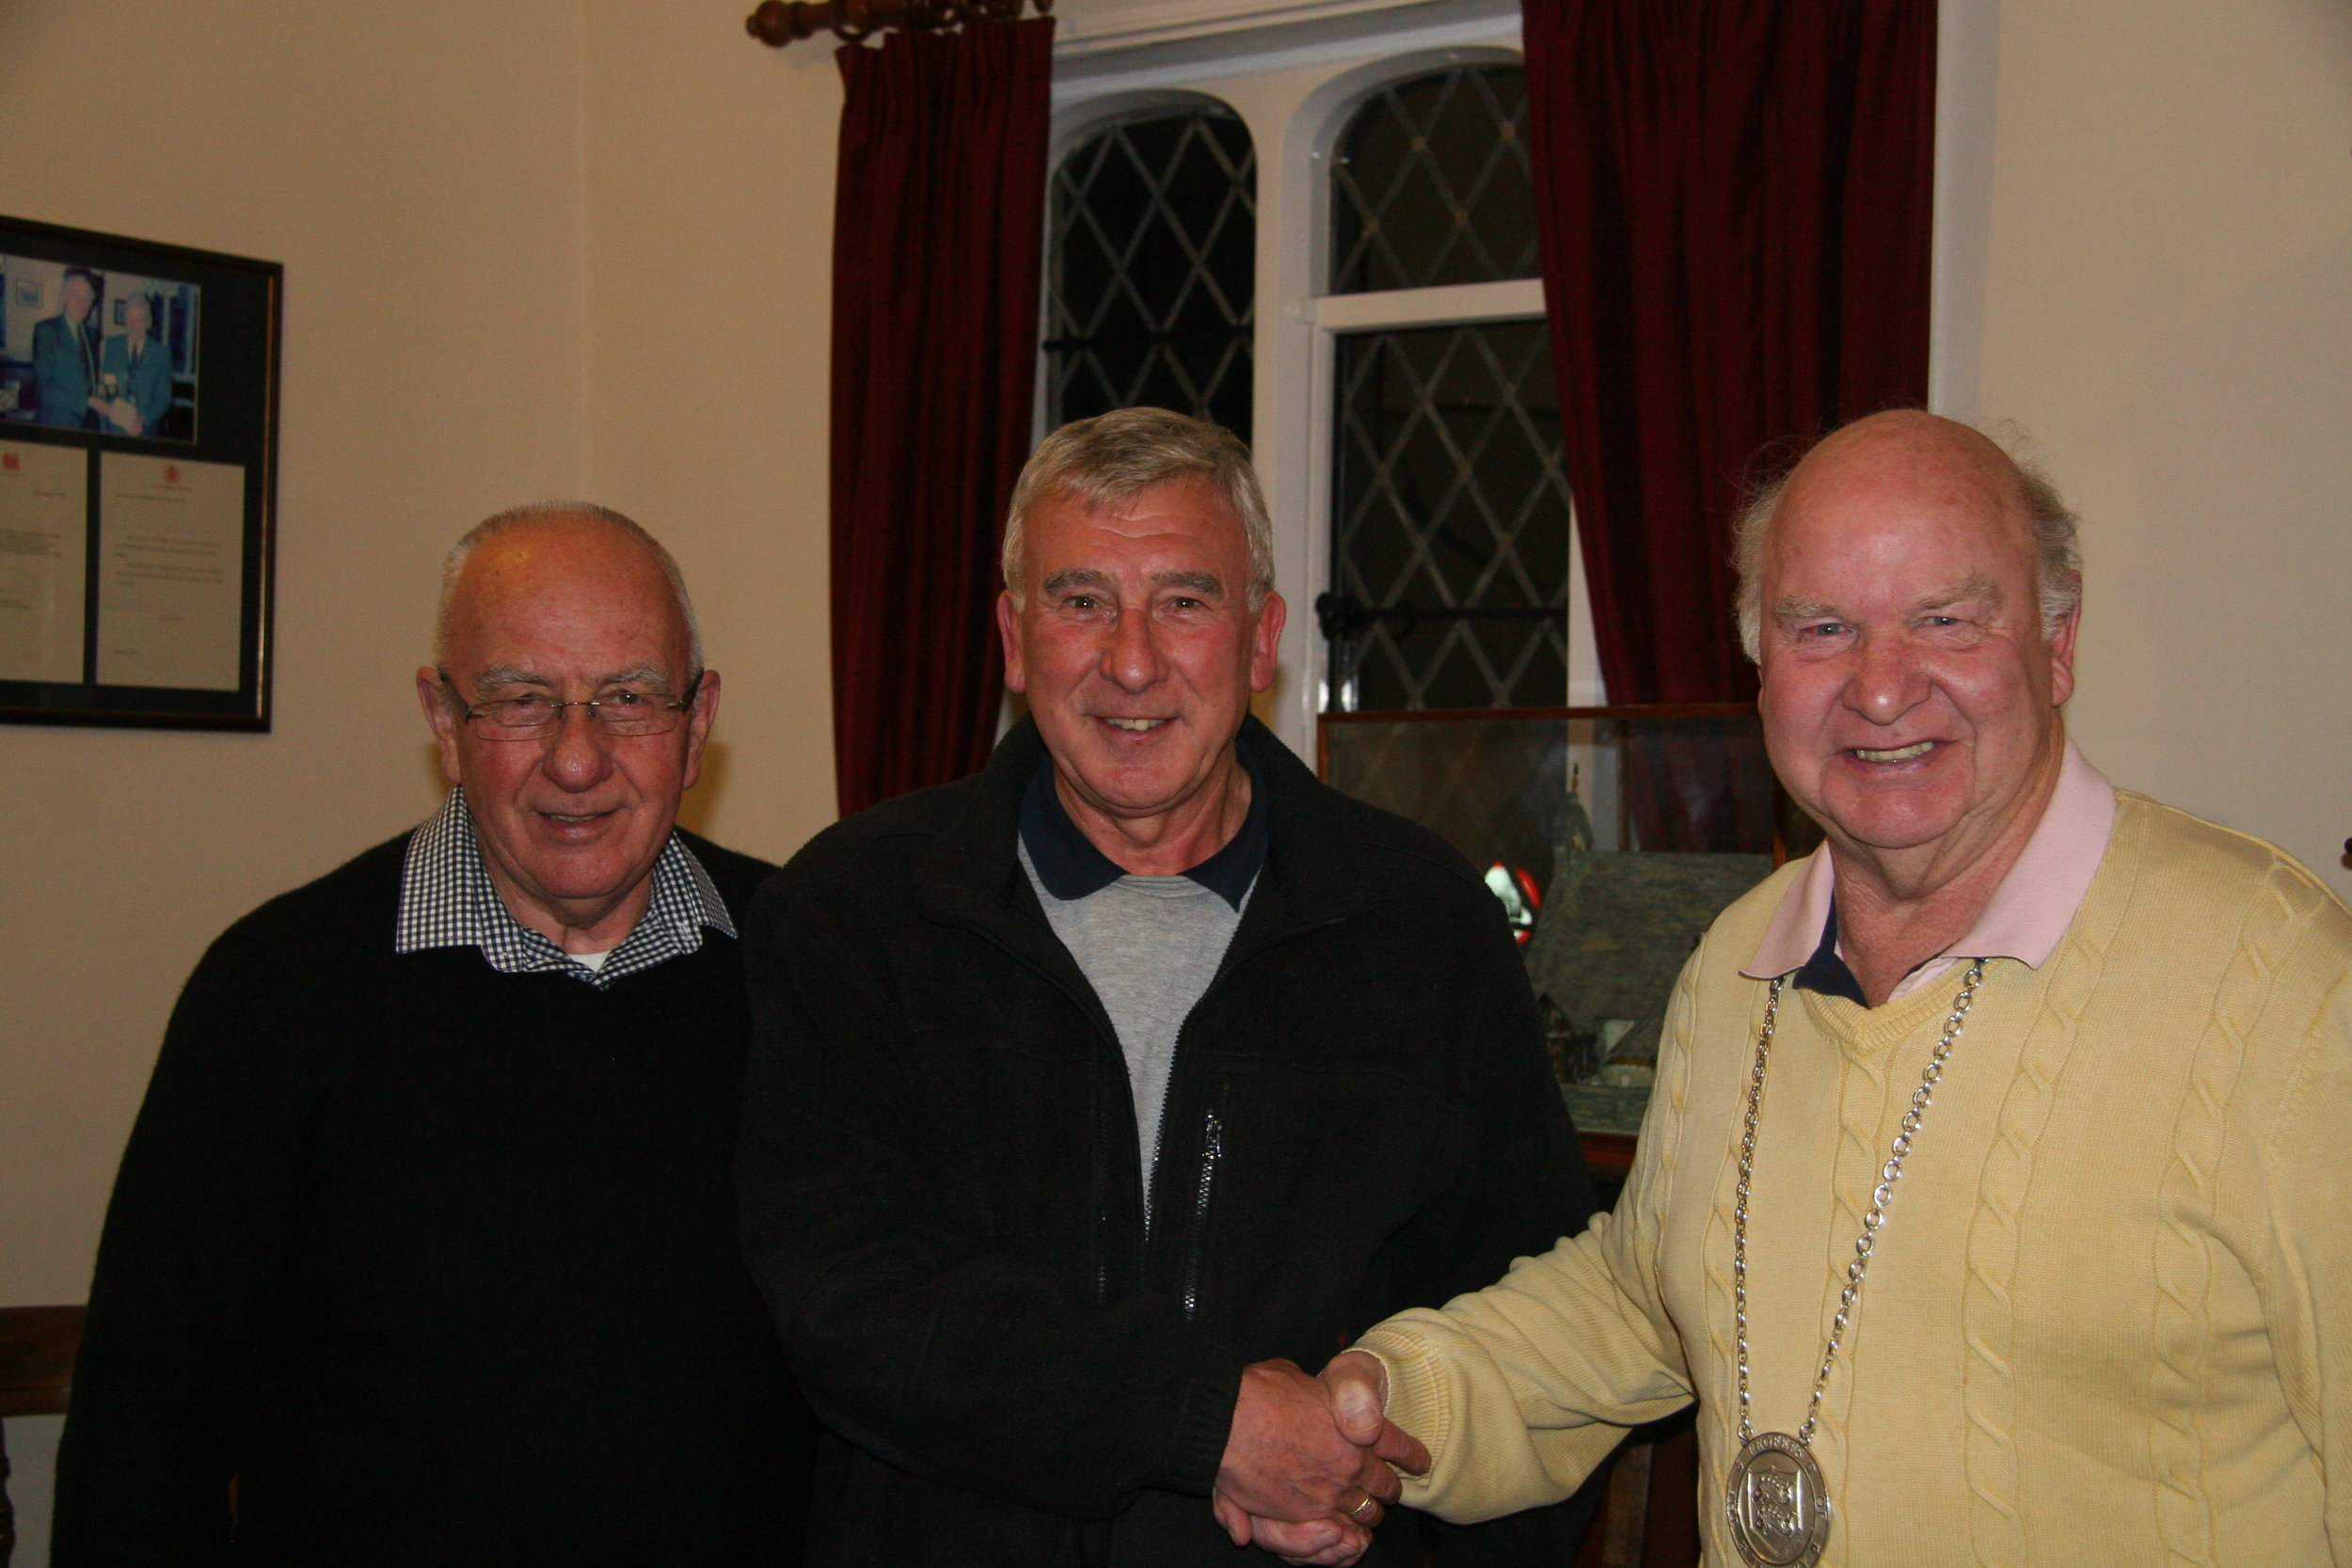 Richard Cooper welcomed to the Feoffees